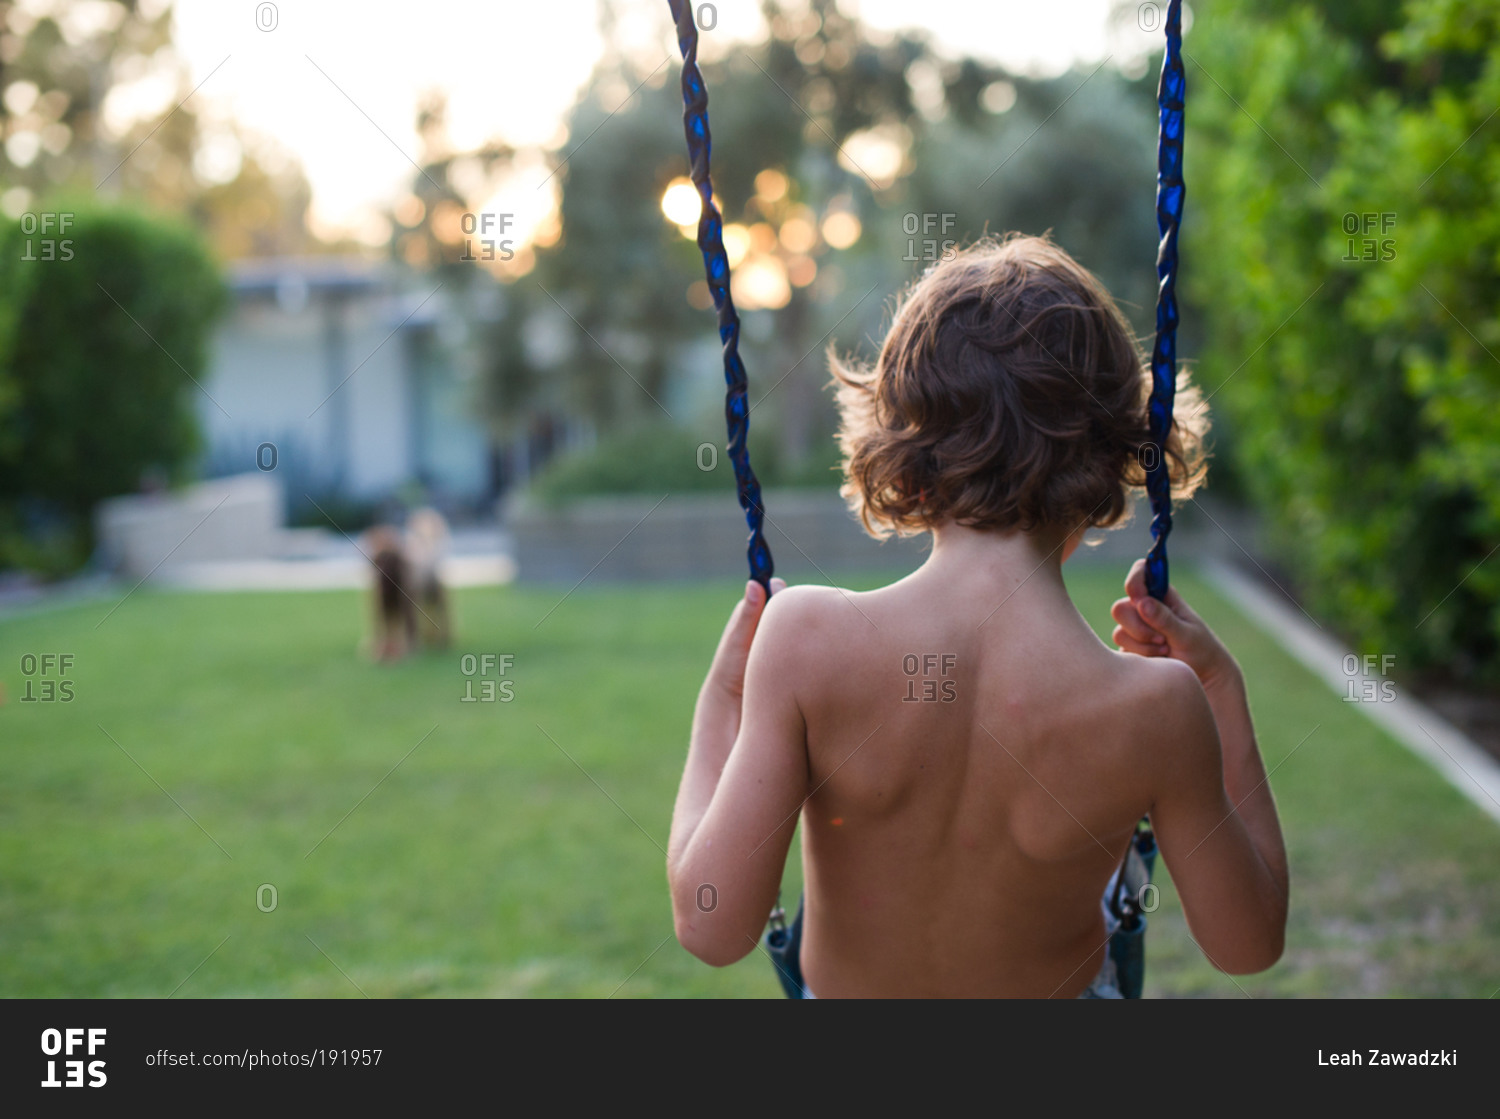 shirtless boy on a swing in backyard stock photo offset